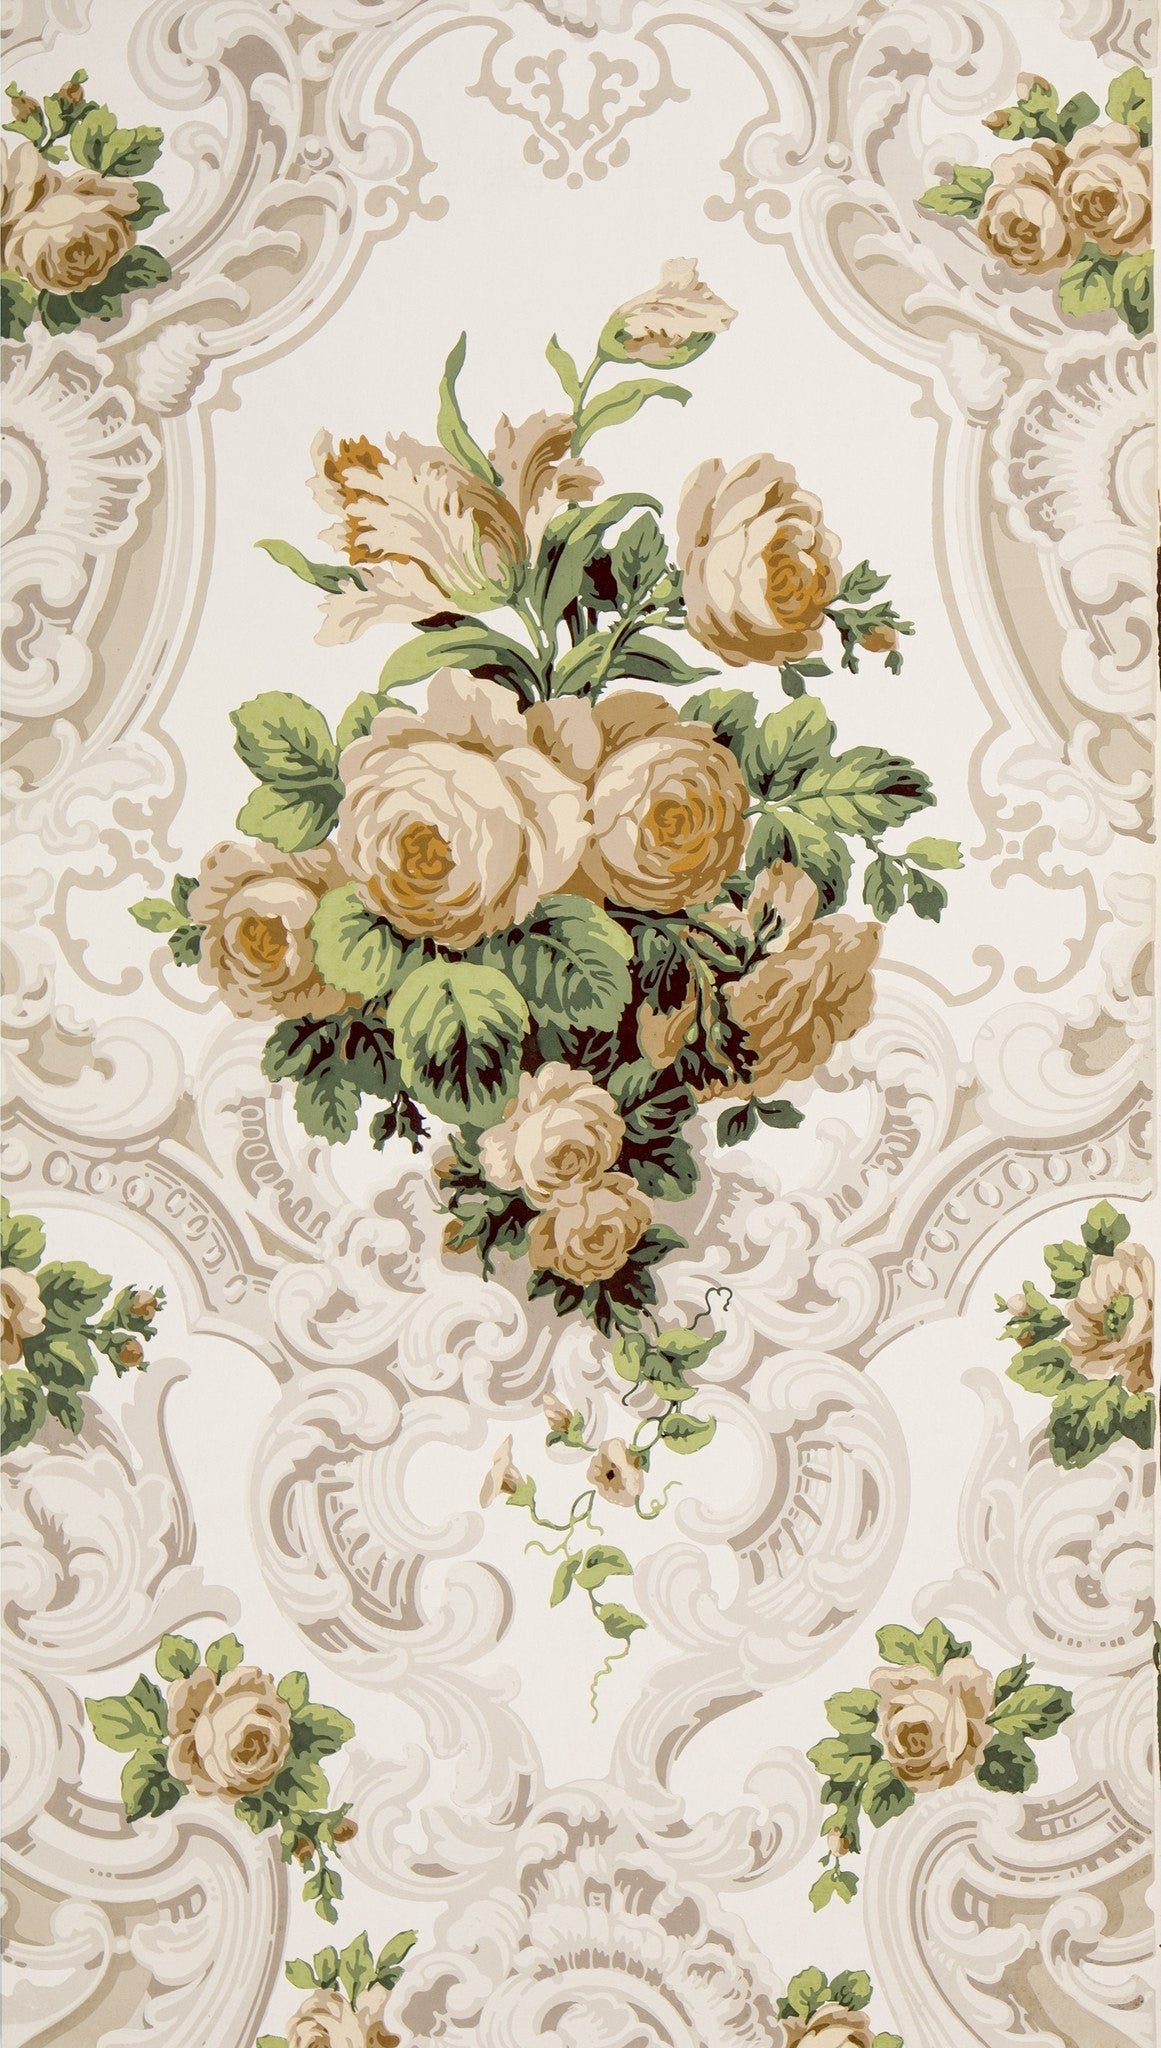 Large Rose Bouquets in Rococo Scrolls - Antique Wallpaper Remnant